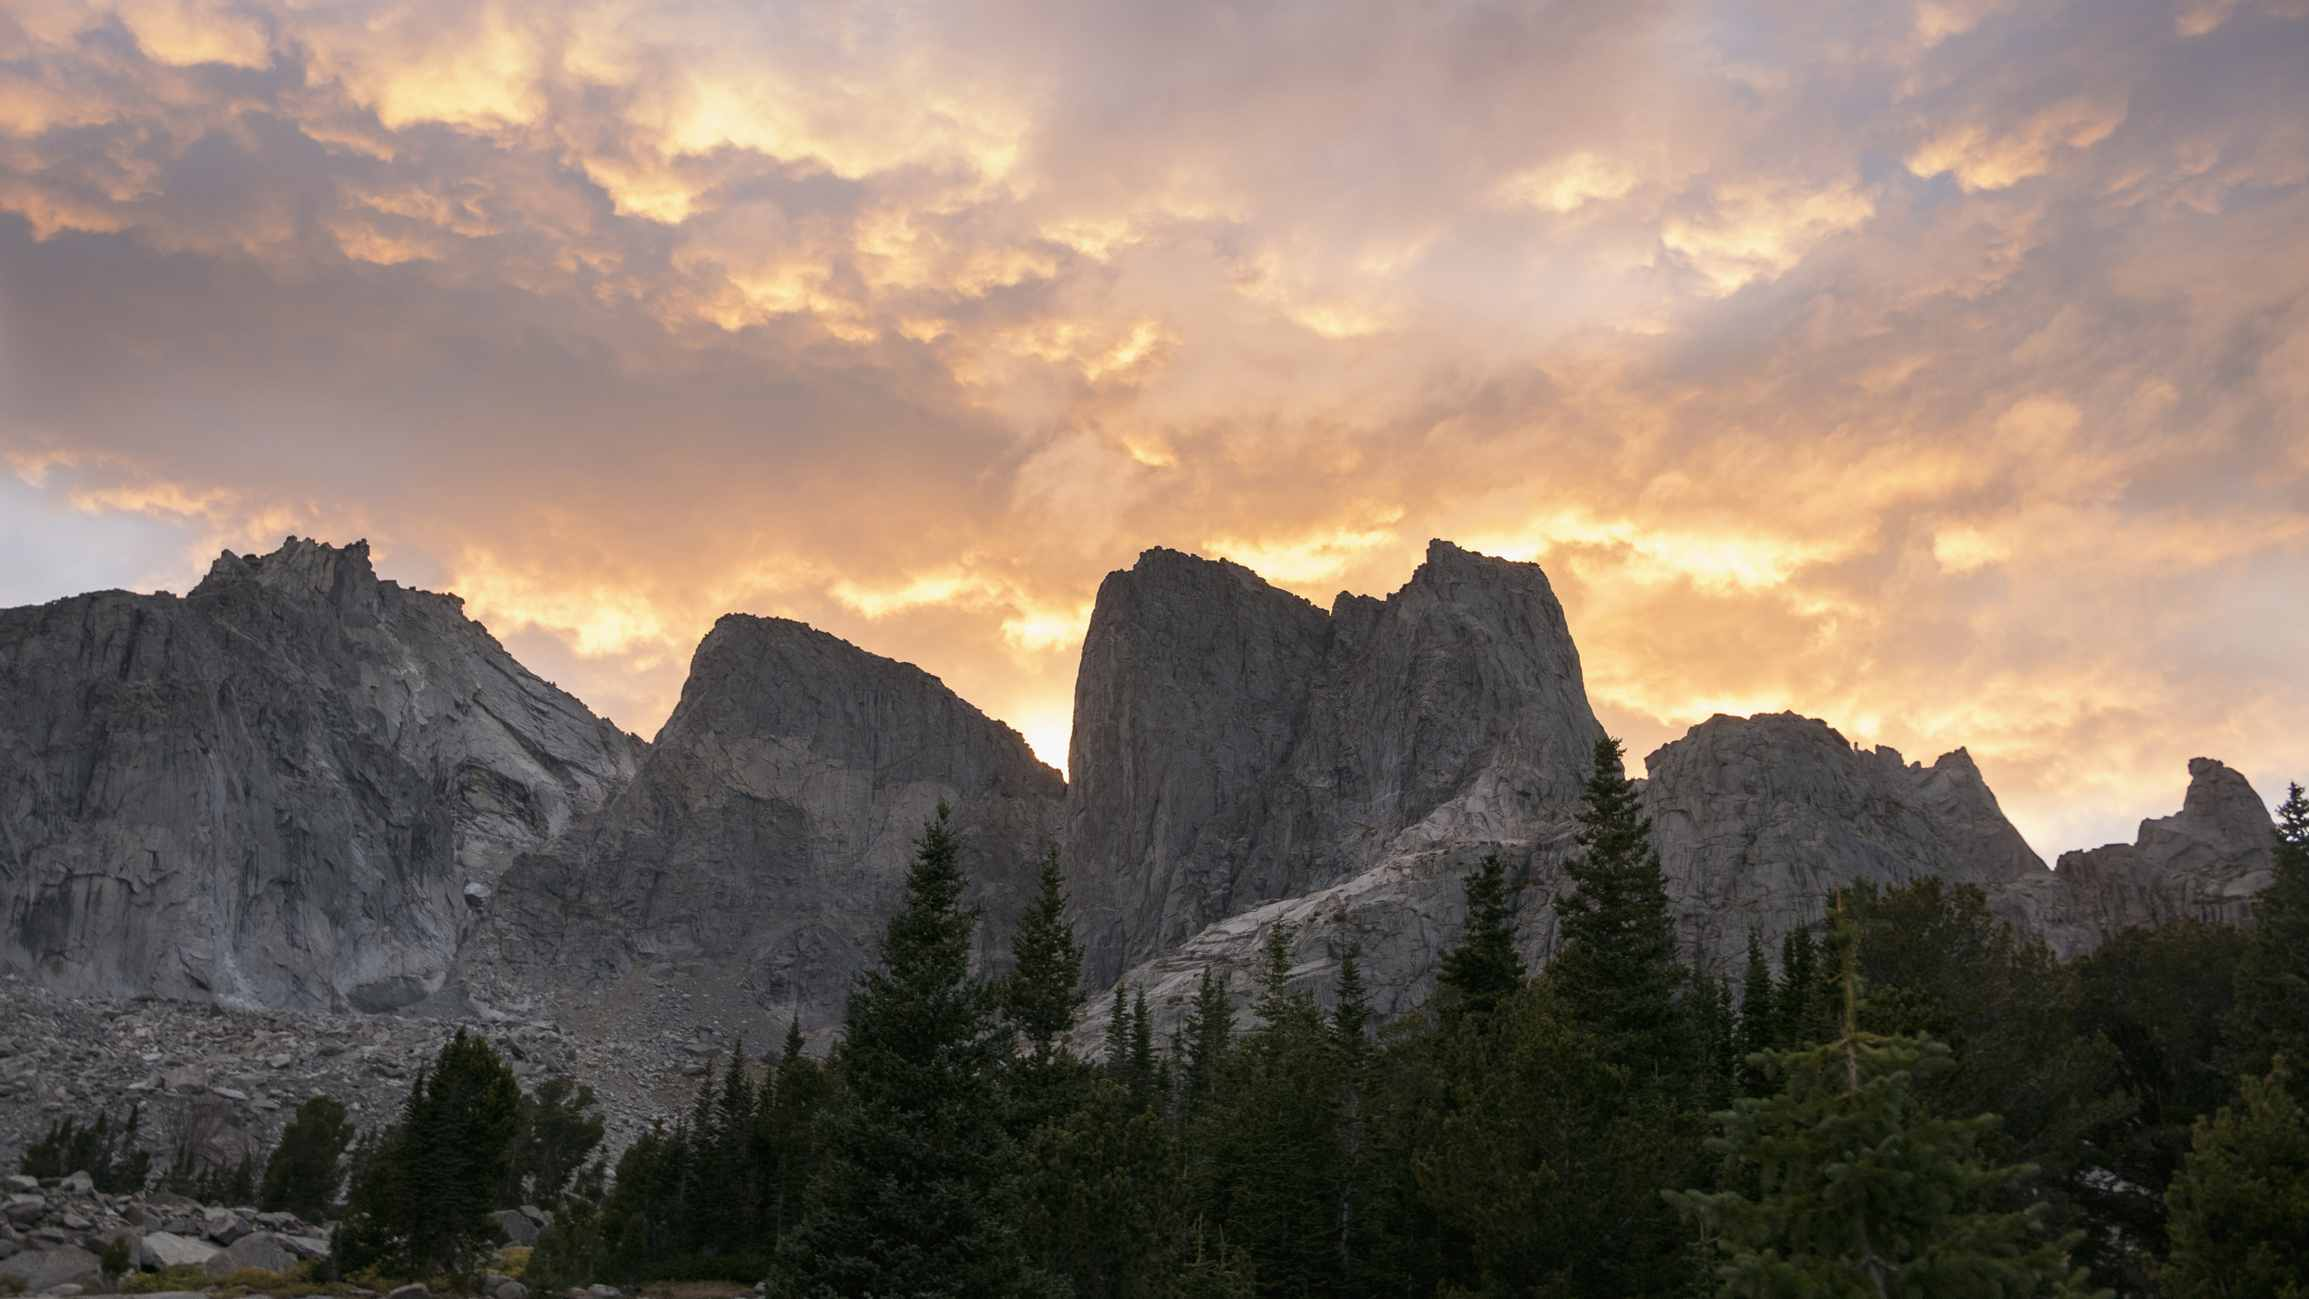 Wind River Mountains at sunset, Pinedale, Wyoming, United States